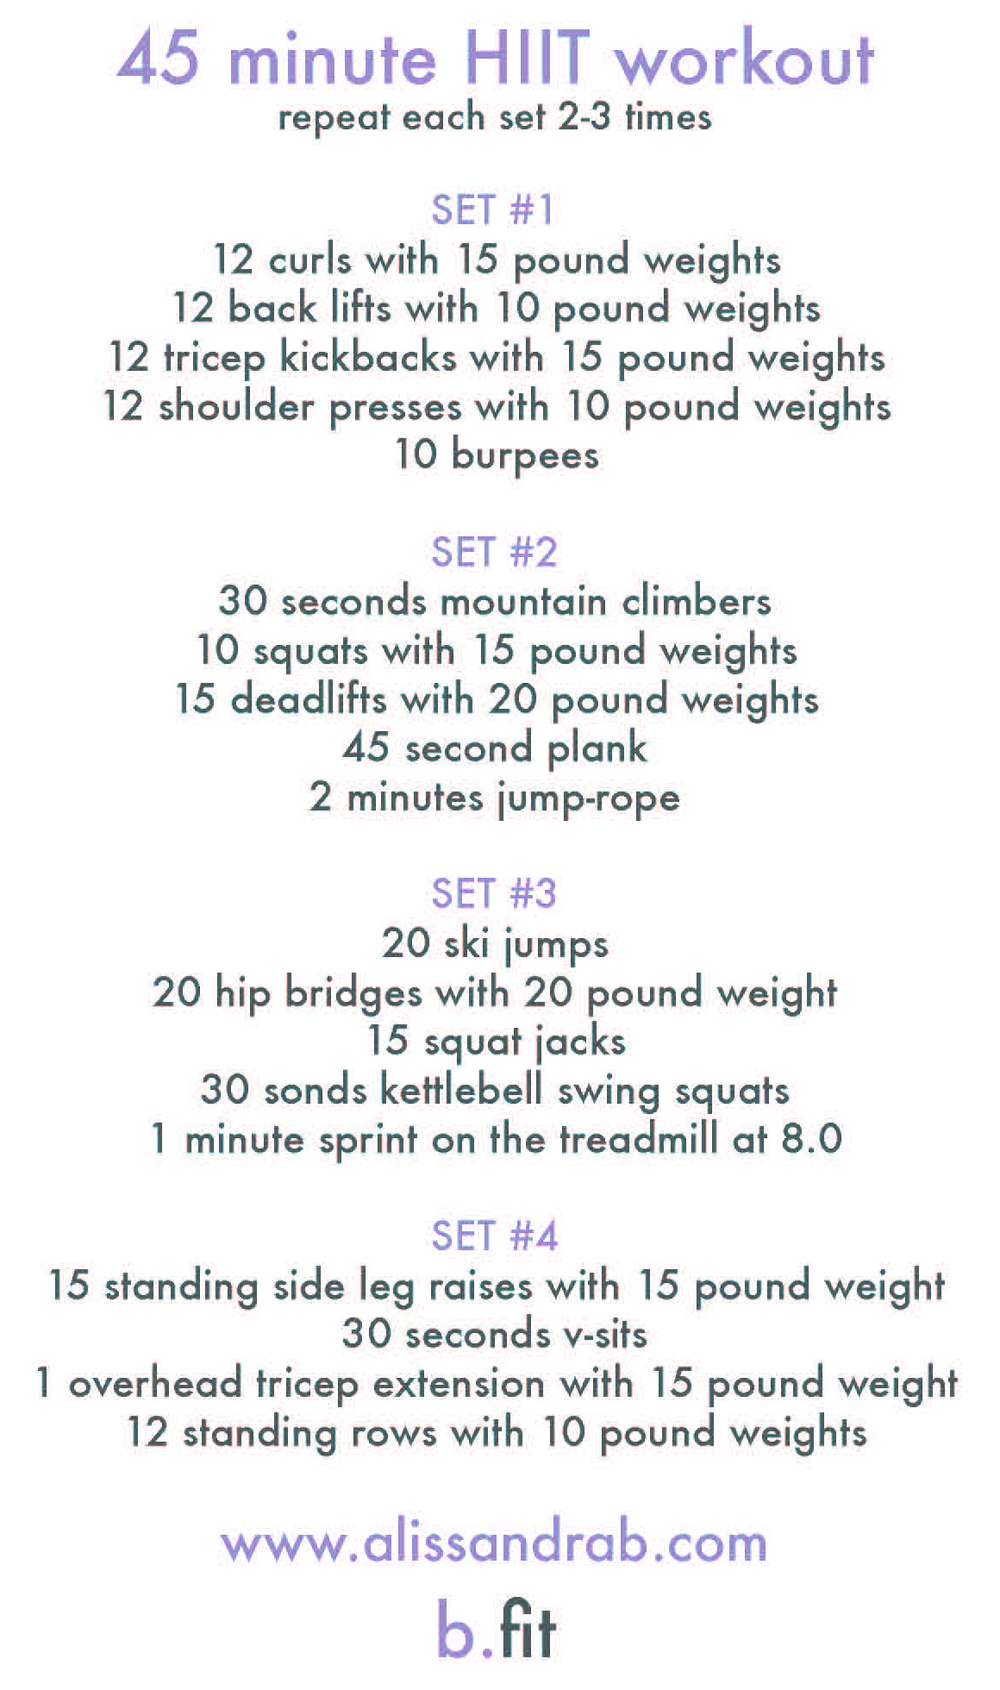 photograph about Printable Hiit Workouts titled september exercise agenda Inspiralized Ali